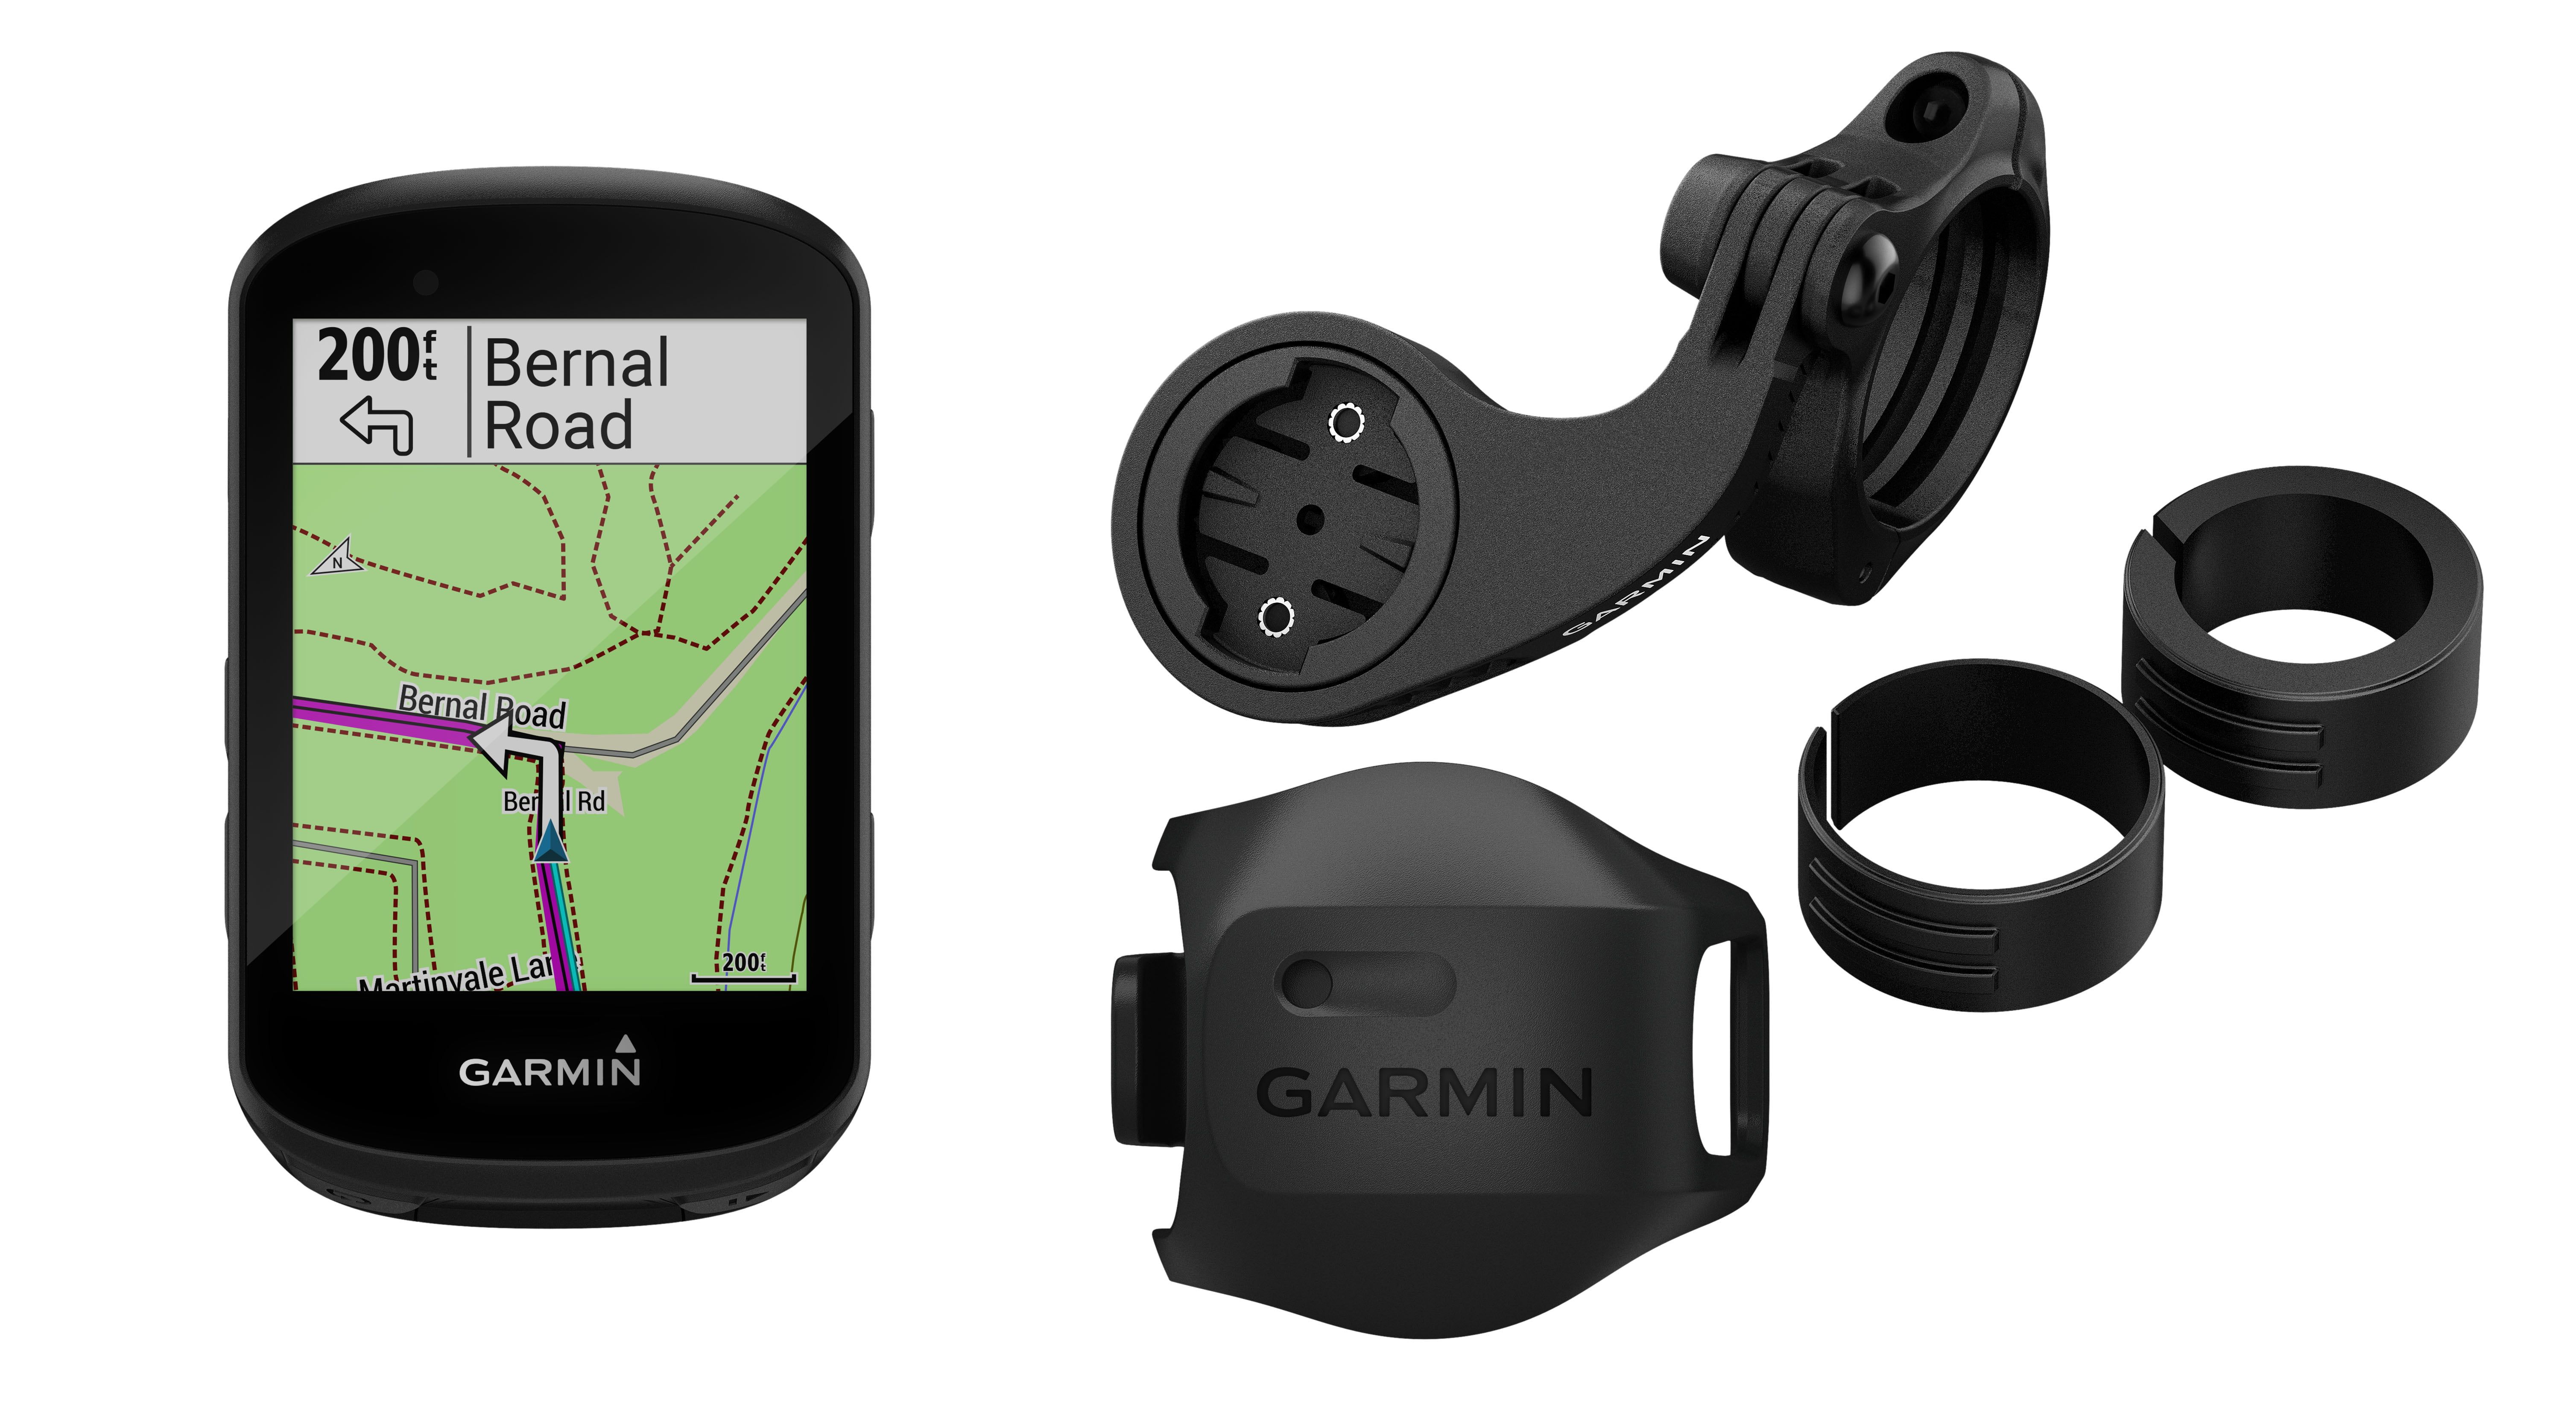 Introducing the Edge® 530 and Edge 830 – GPS Cycling